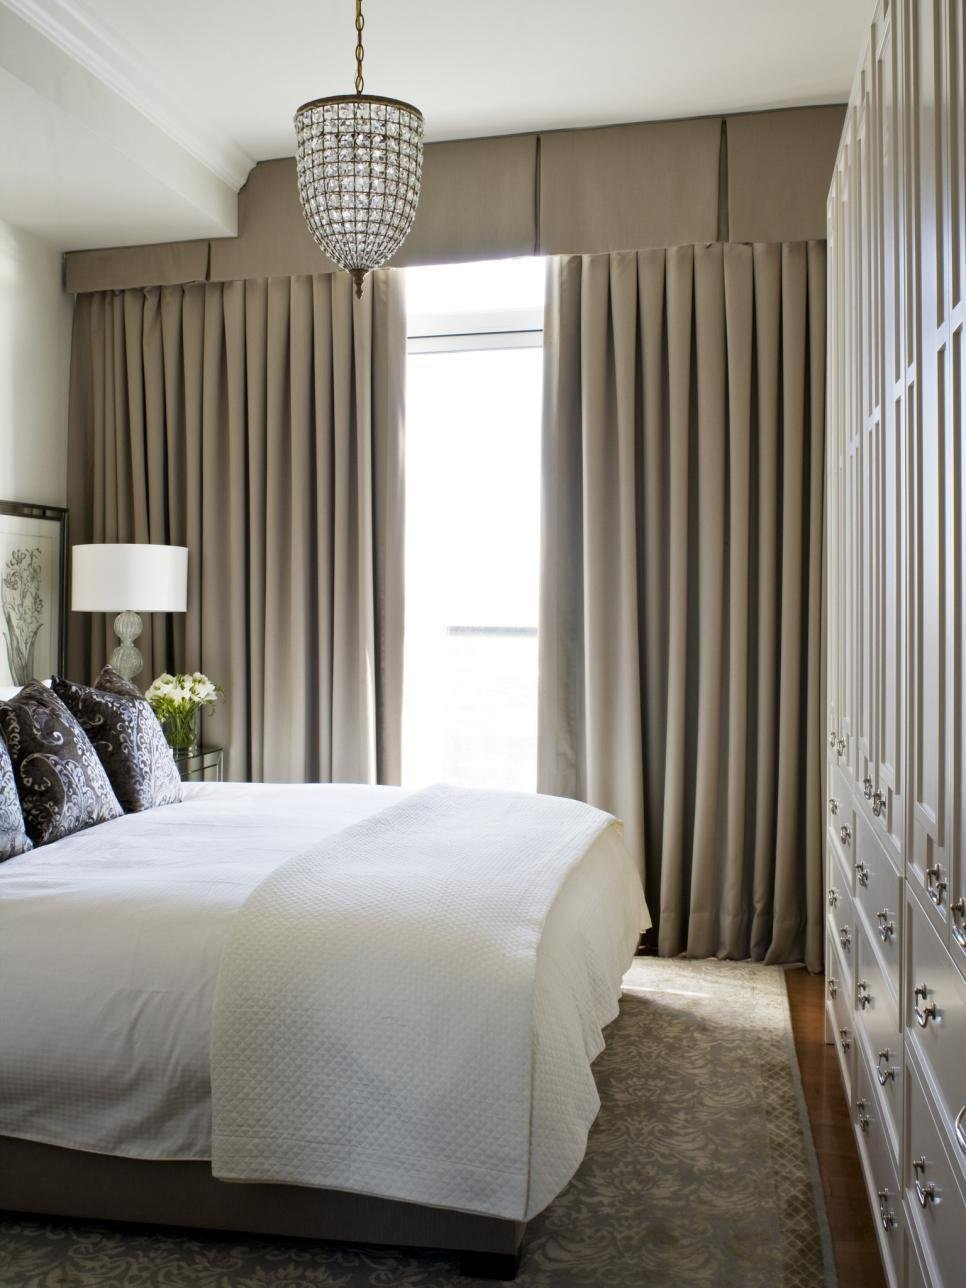 Best Small Space Decorating Don Ts Hgtv With Pictures